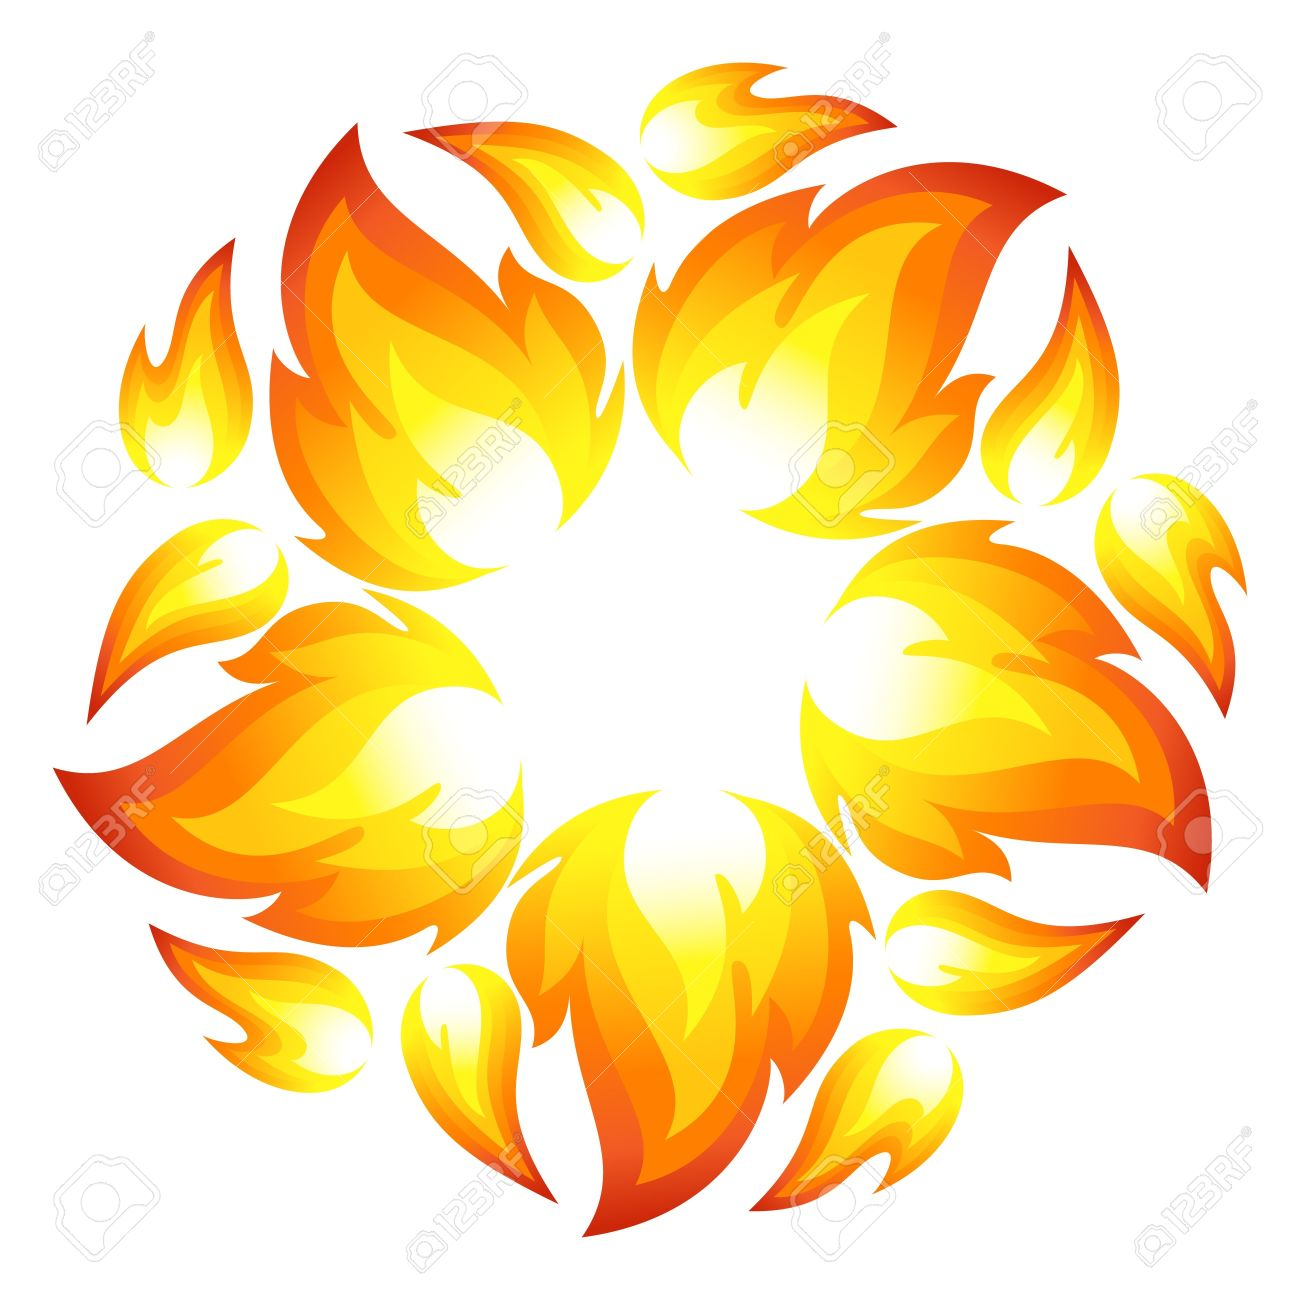 Fire Flower Royalty Free Cliparts, Vectors, And Stock Illustration.